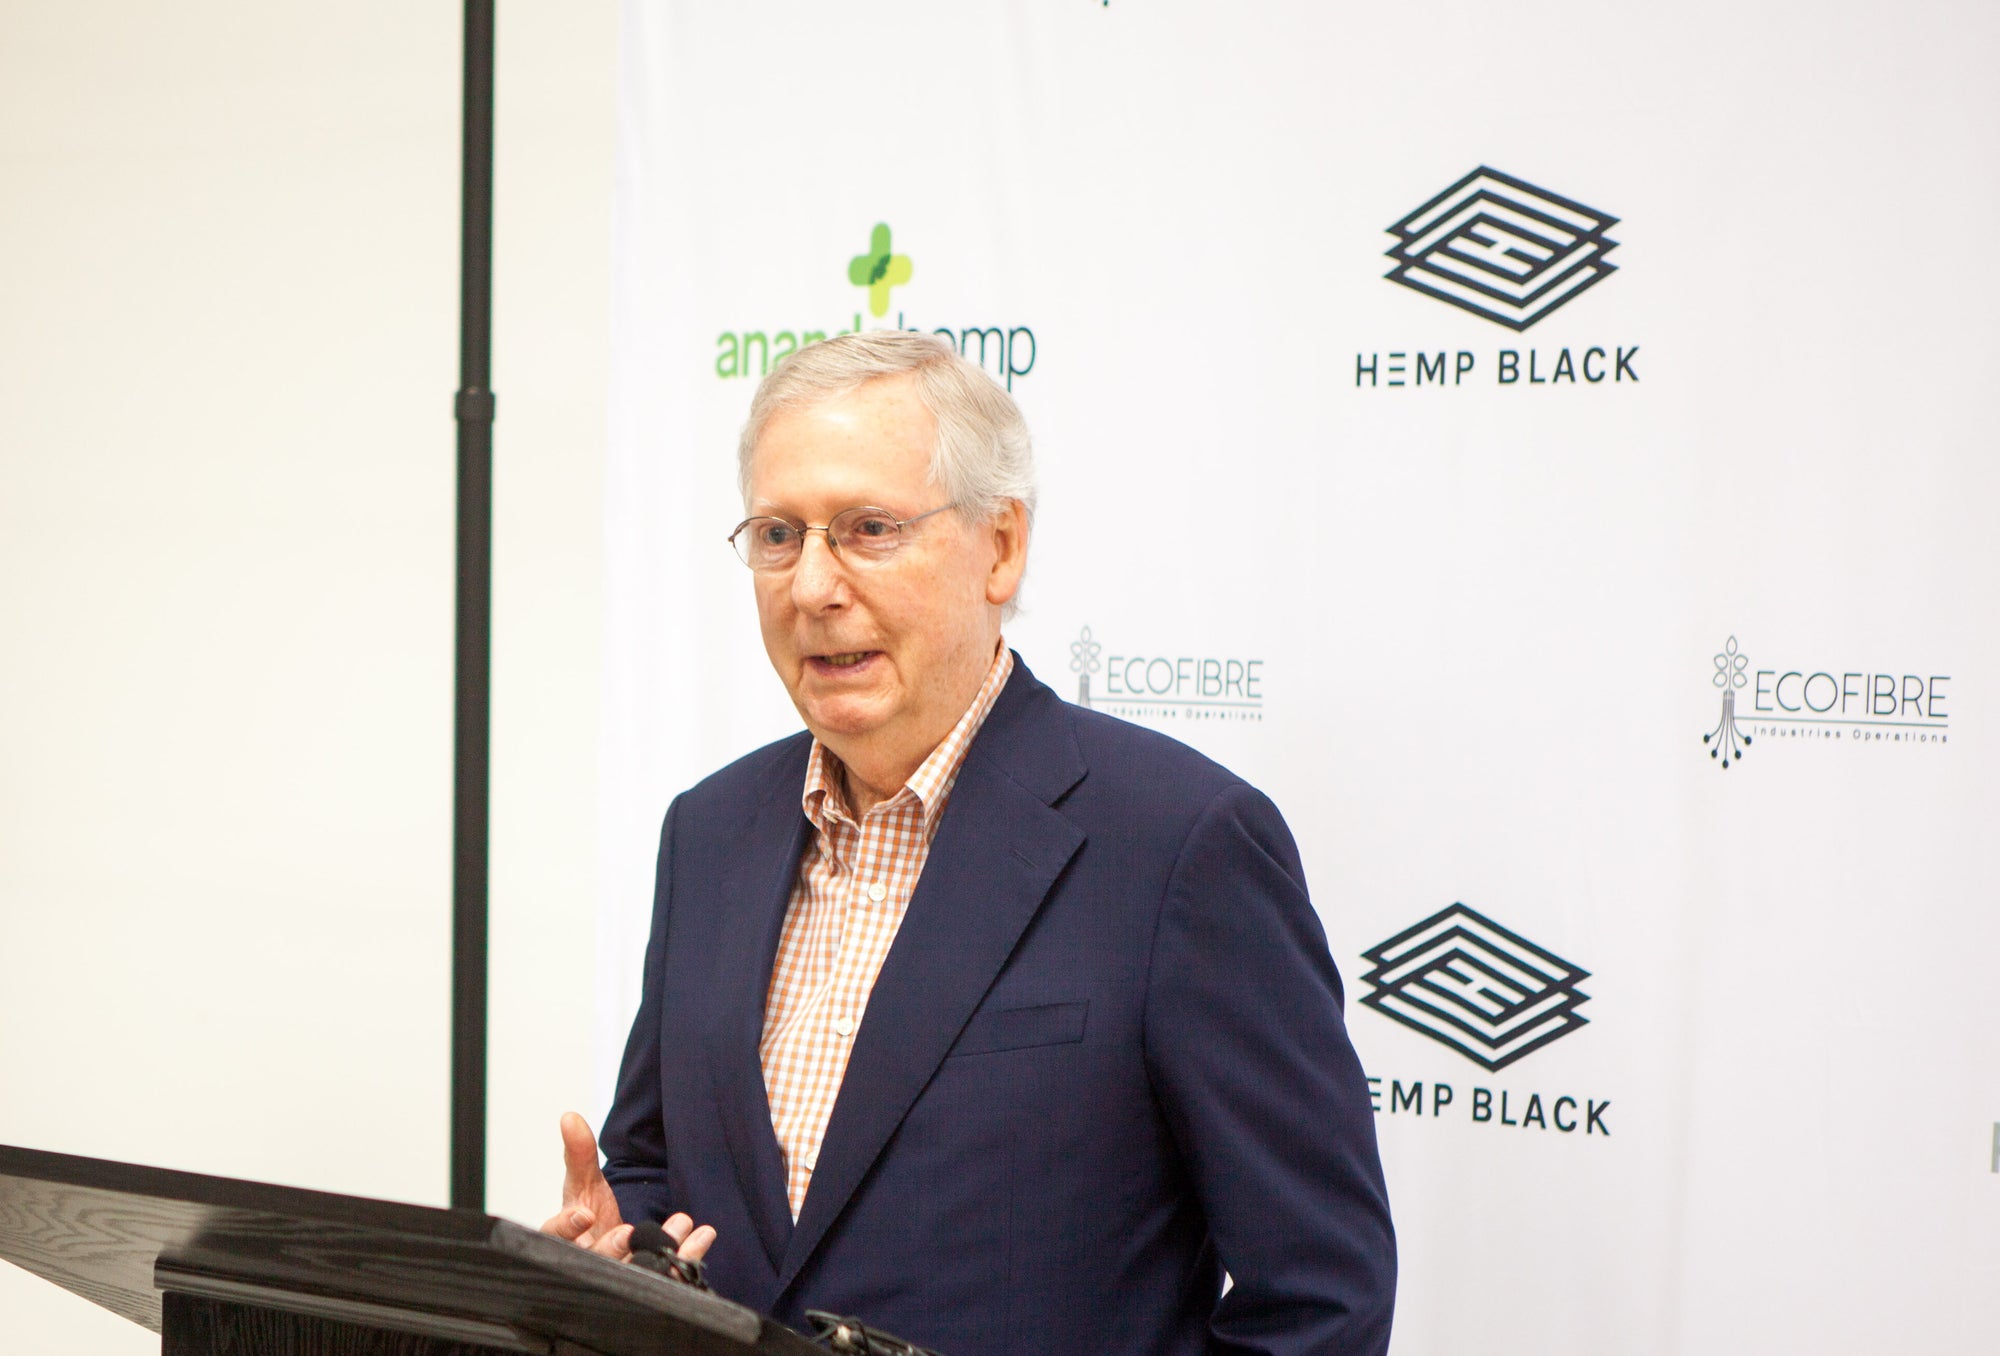 Hemp announcement from mitch mcconnell